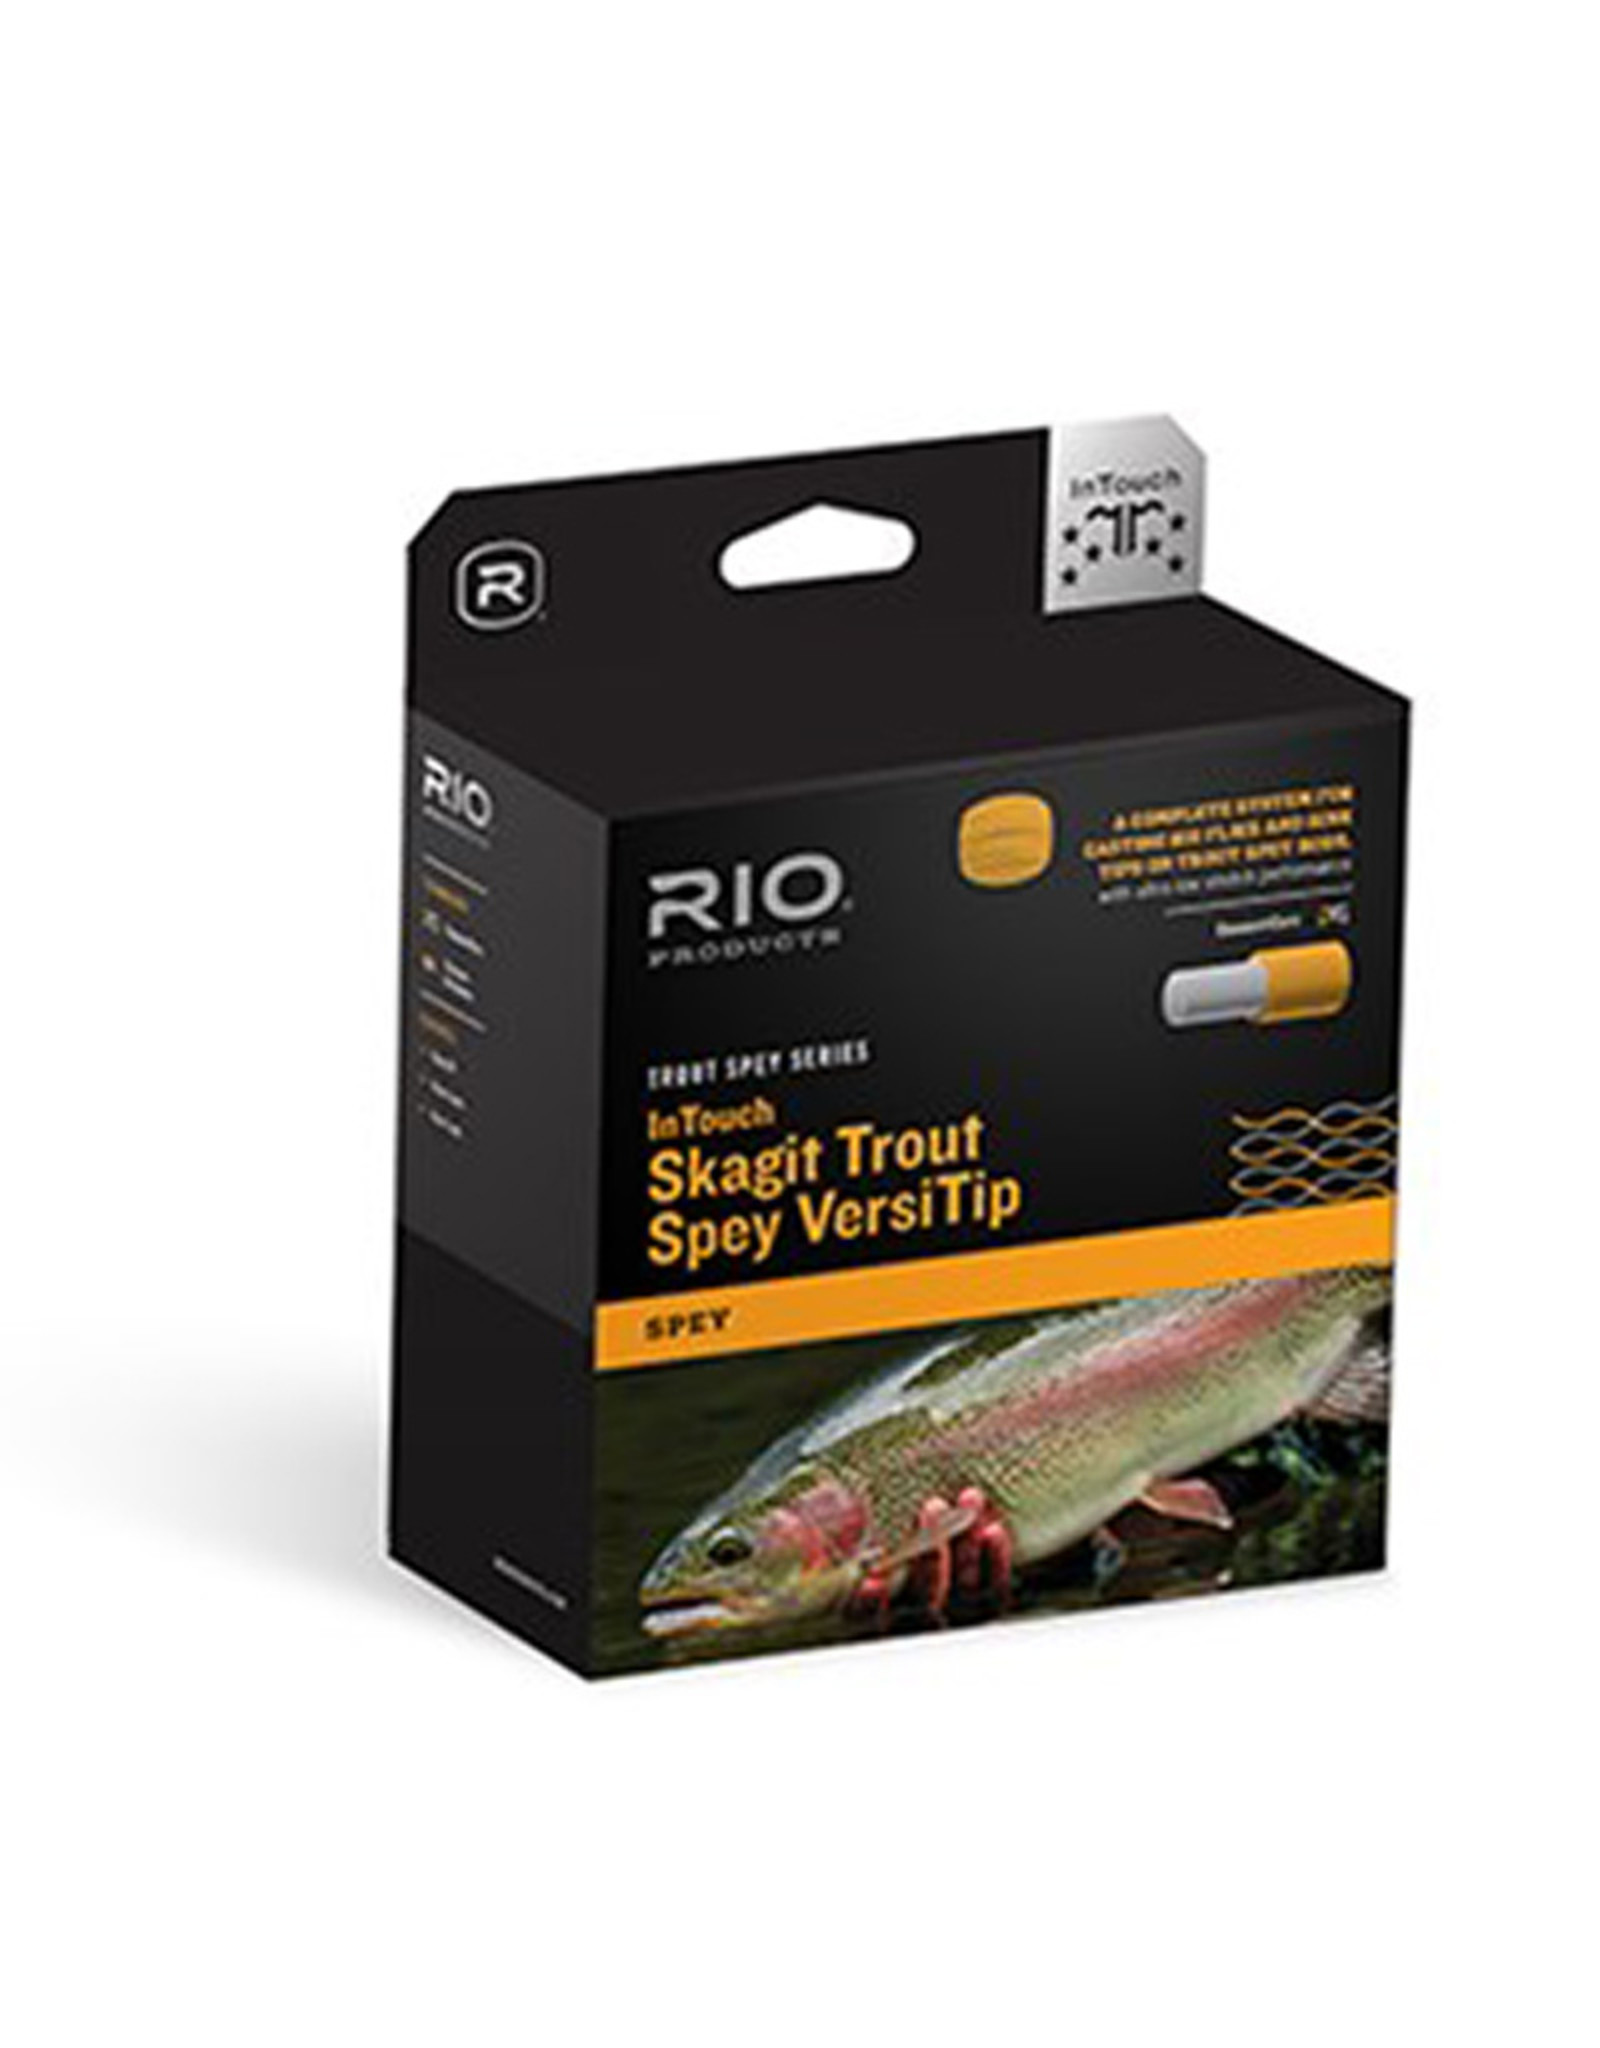 RIO Products InTouch Skagit Trout Spey VersiTip